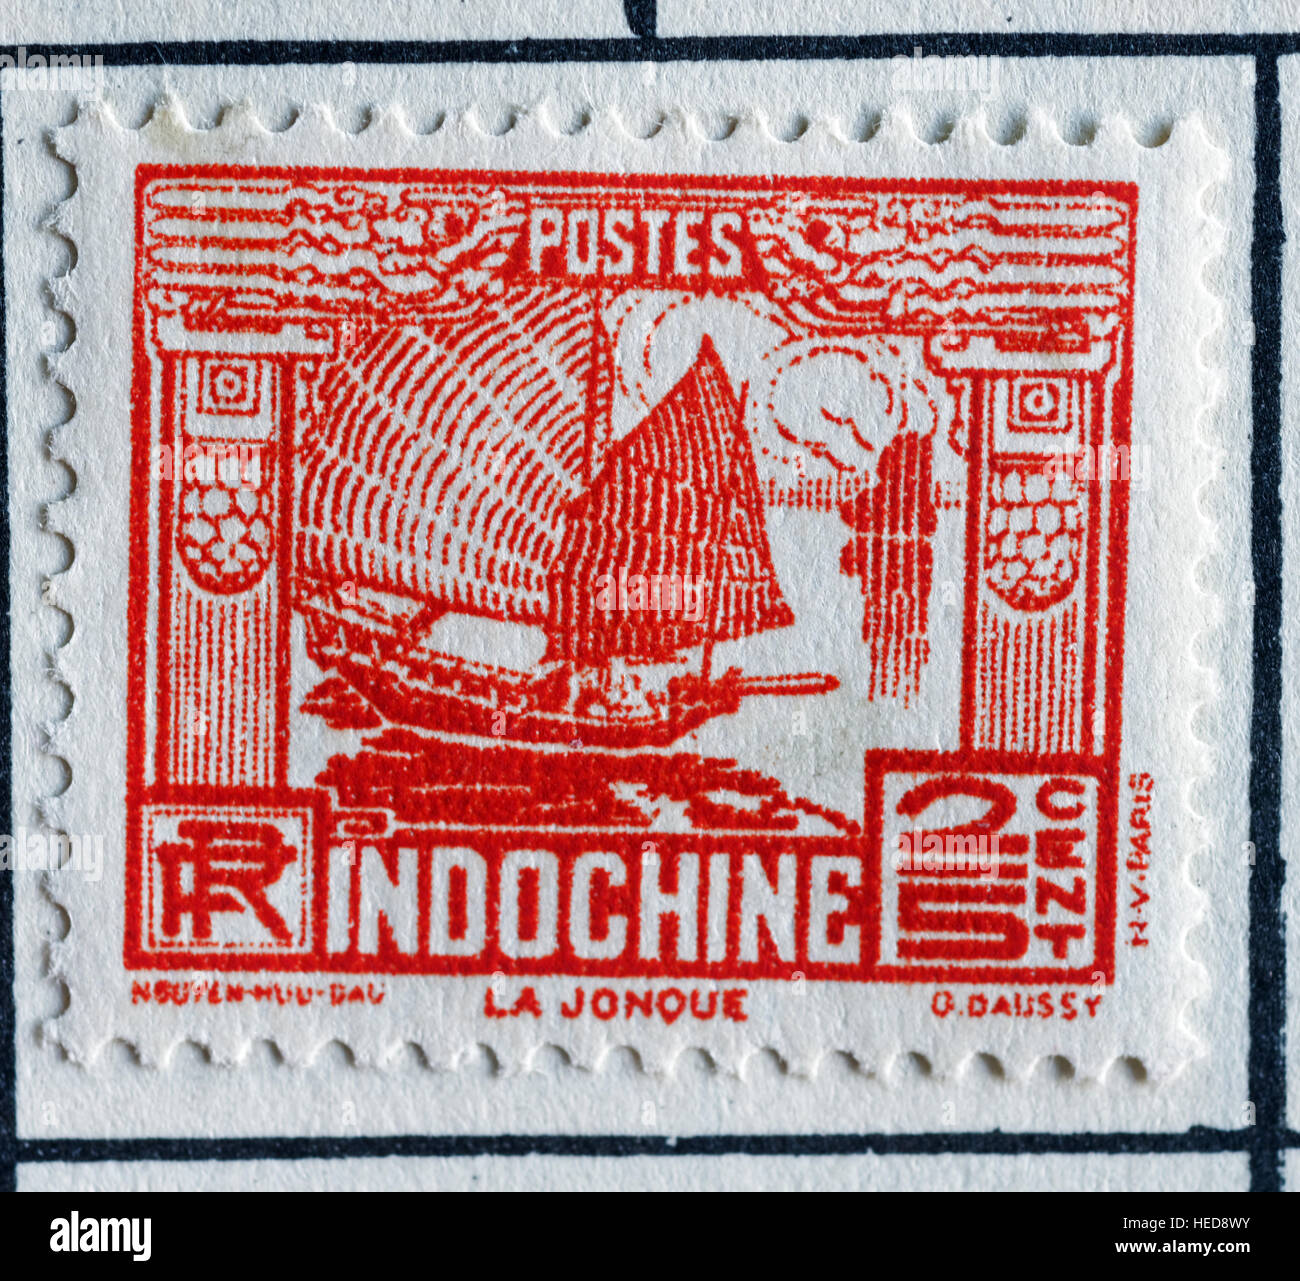 Postage Stamp from French Indochina - Stock Image